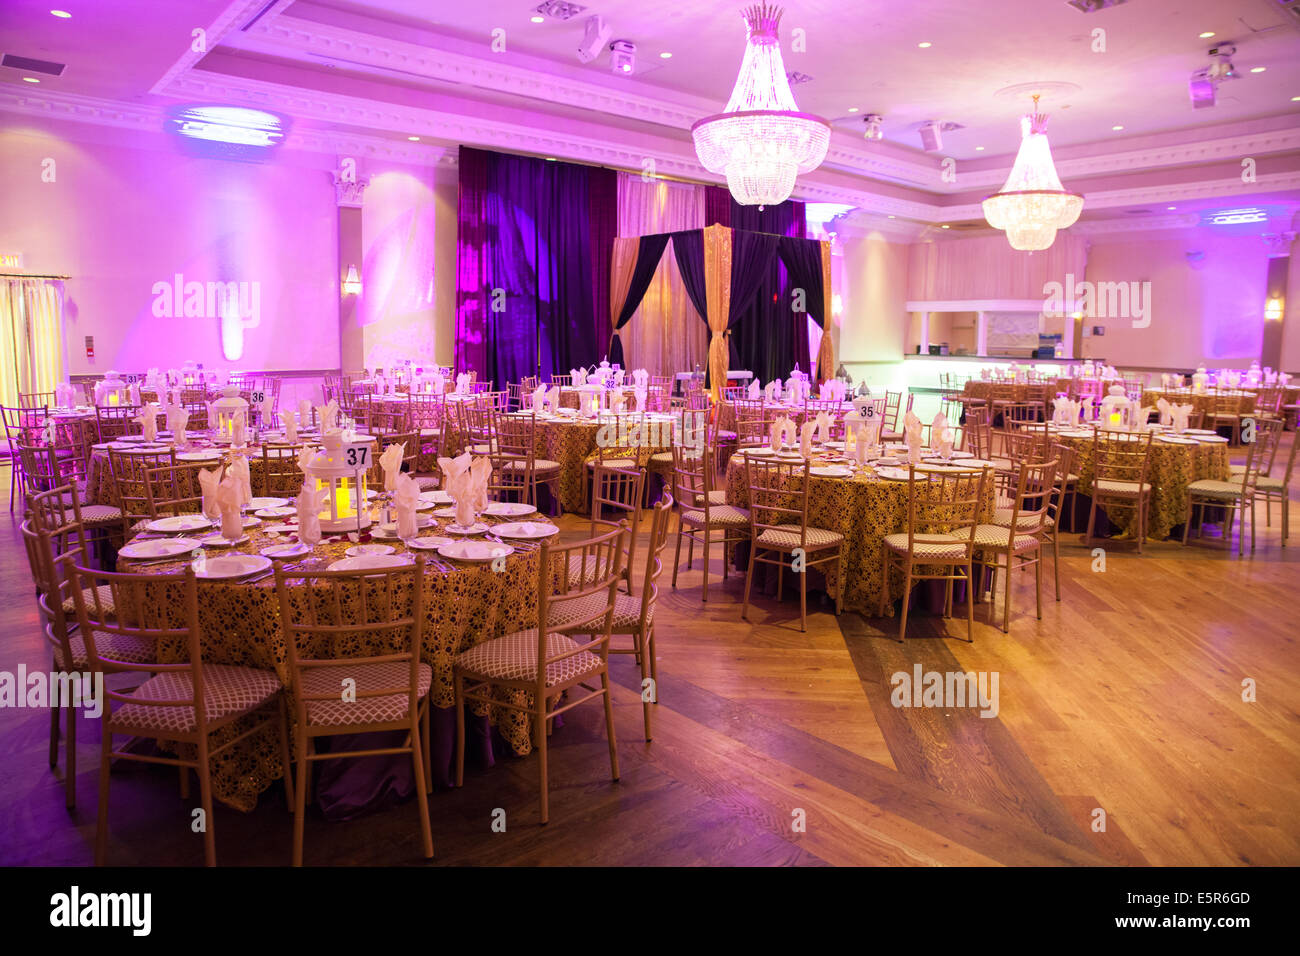 table setup banquet hall colorful light decoration - Stock Image